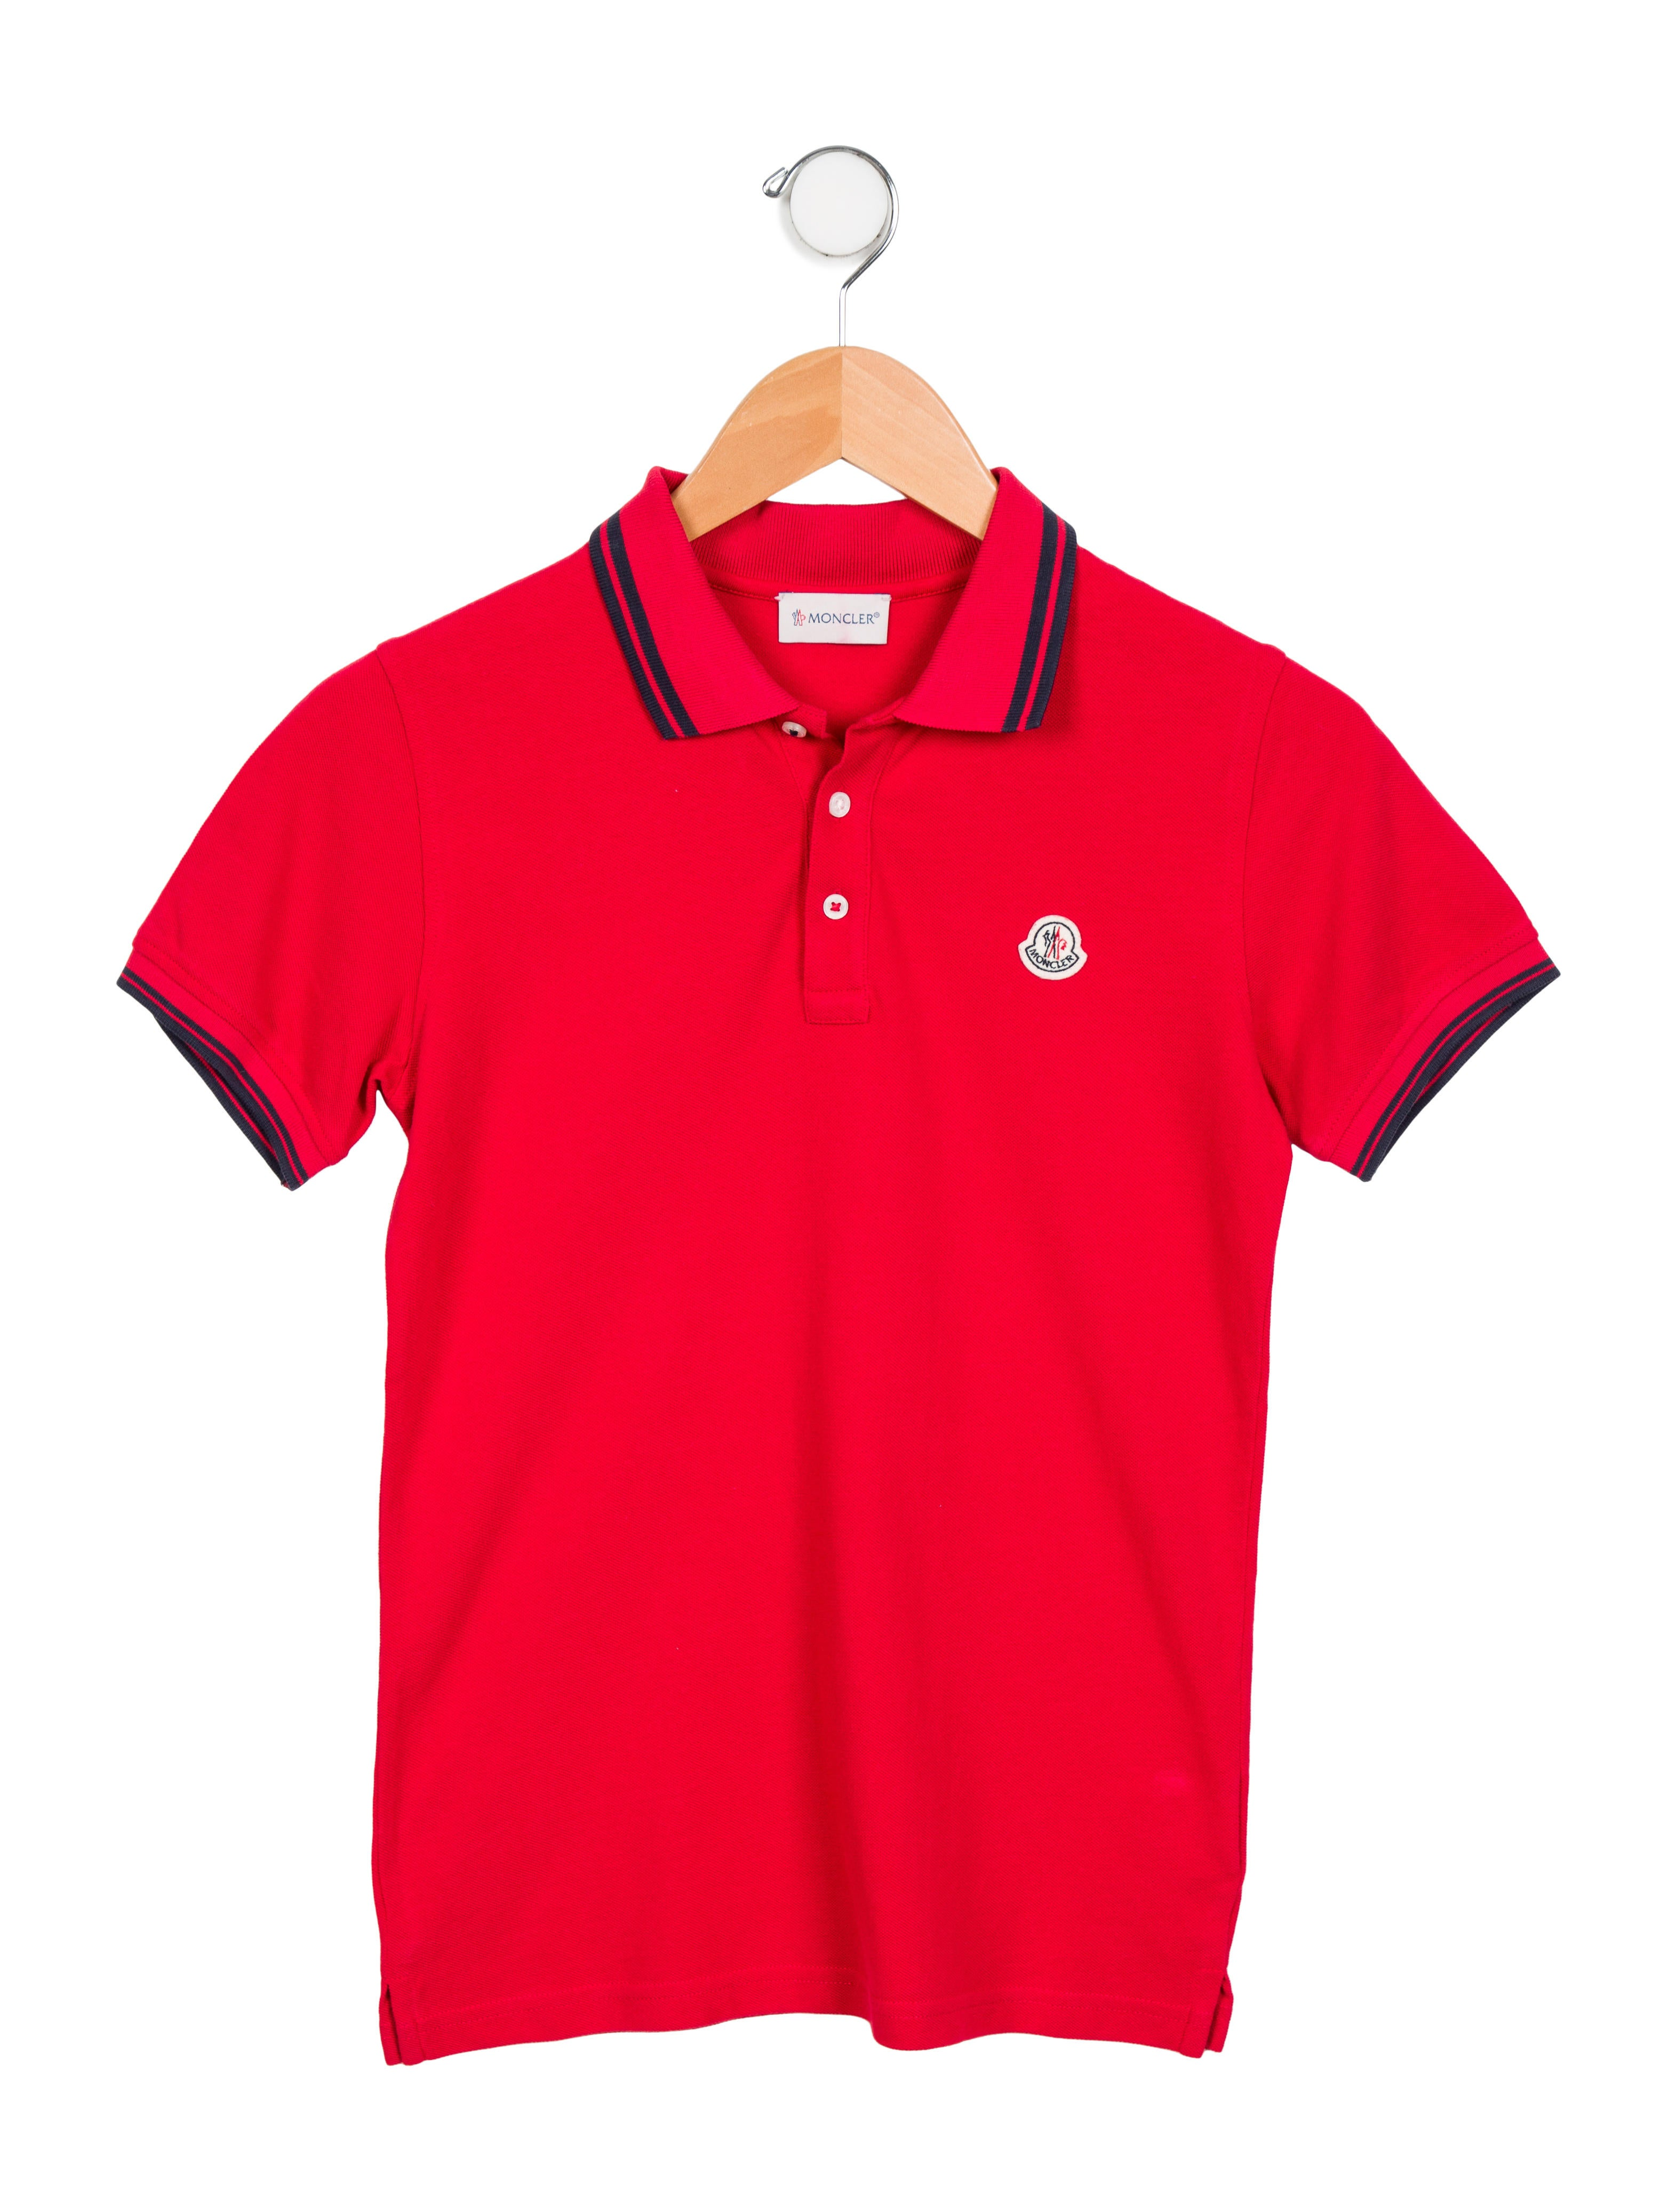 When purchasing boys' polo shirts, you have a choice of long-sleeve and short-sleeve options to suit the climate or event. Long sleeve Long-sleeve polos feature the classic three-button closure or a modern two-button style, giving him the option to show off an undershirt worn below the polo .